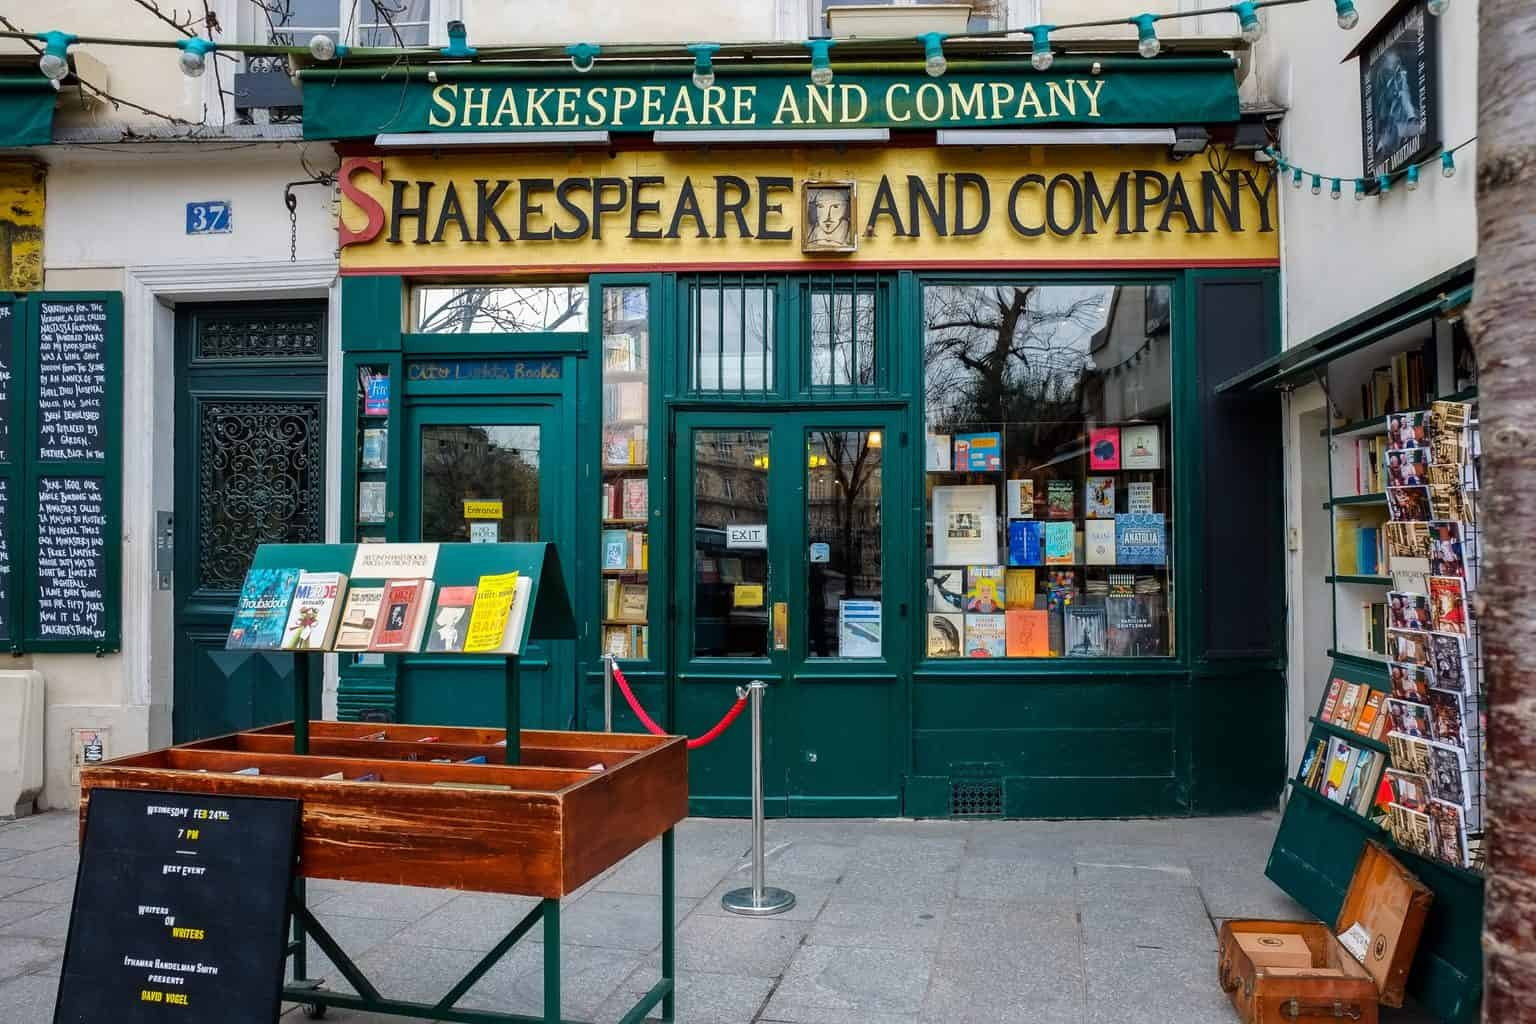 No trip to Paris would be complete without a visit to Shakespeare and Co., one of the city's coolest bookstores!